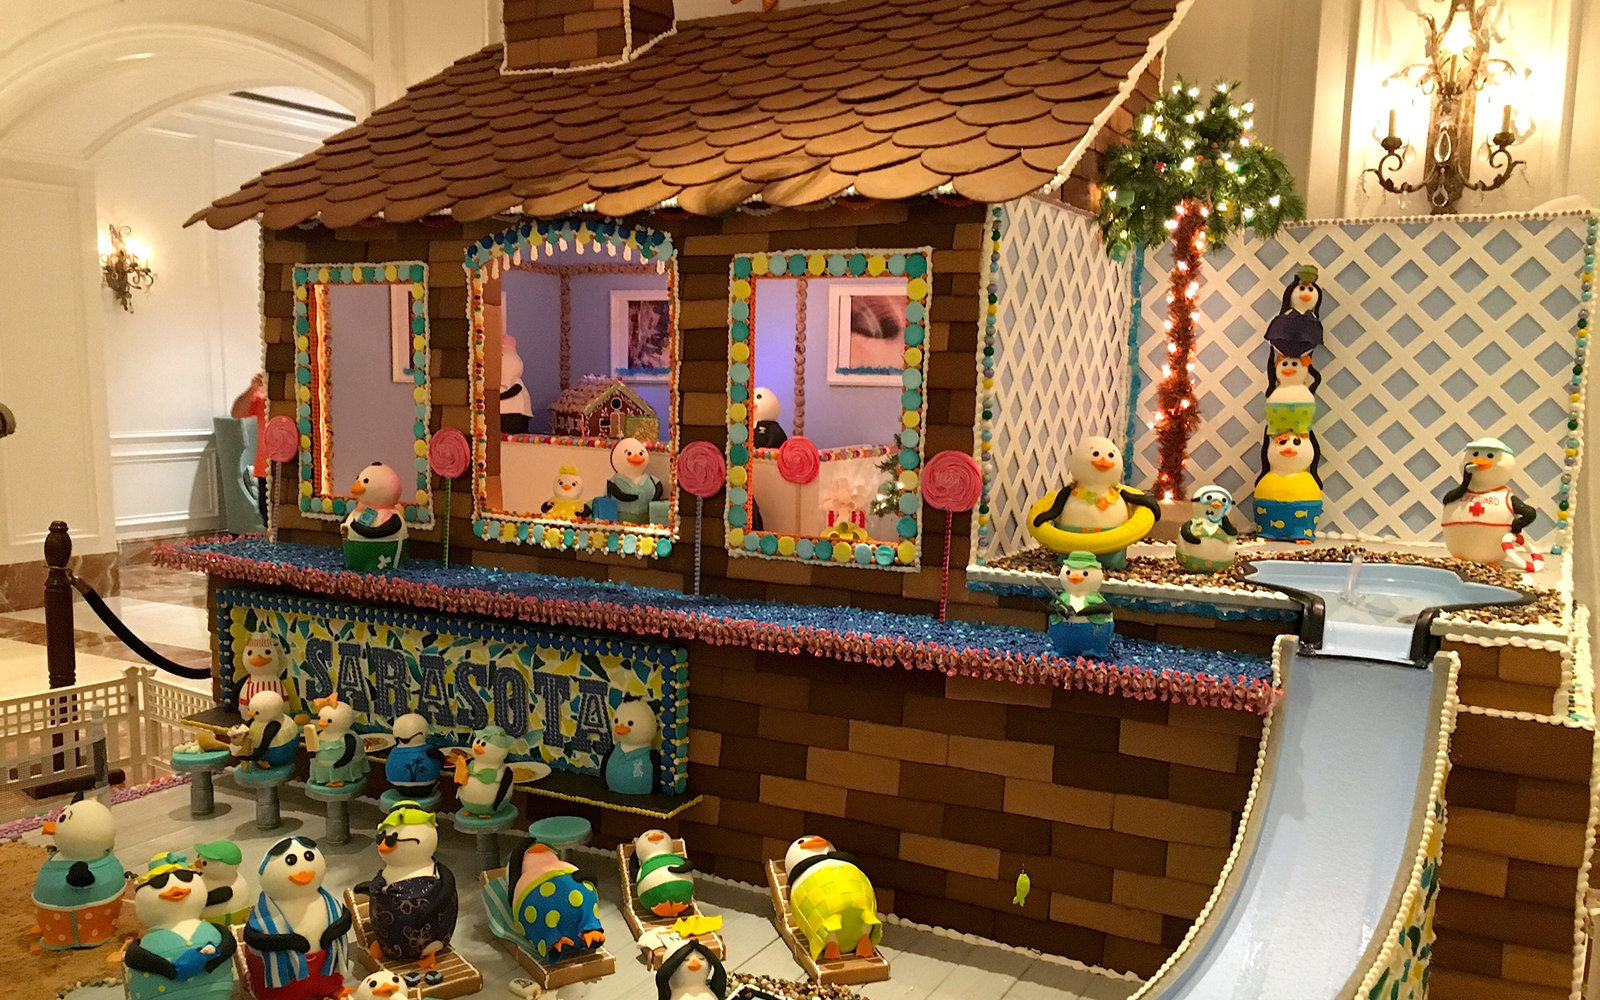 The Best Hotel Gingerbread Houses | Travel + Leisure